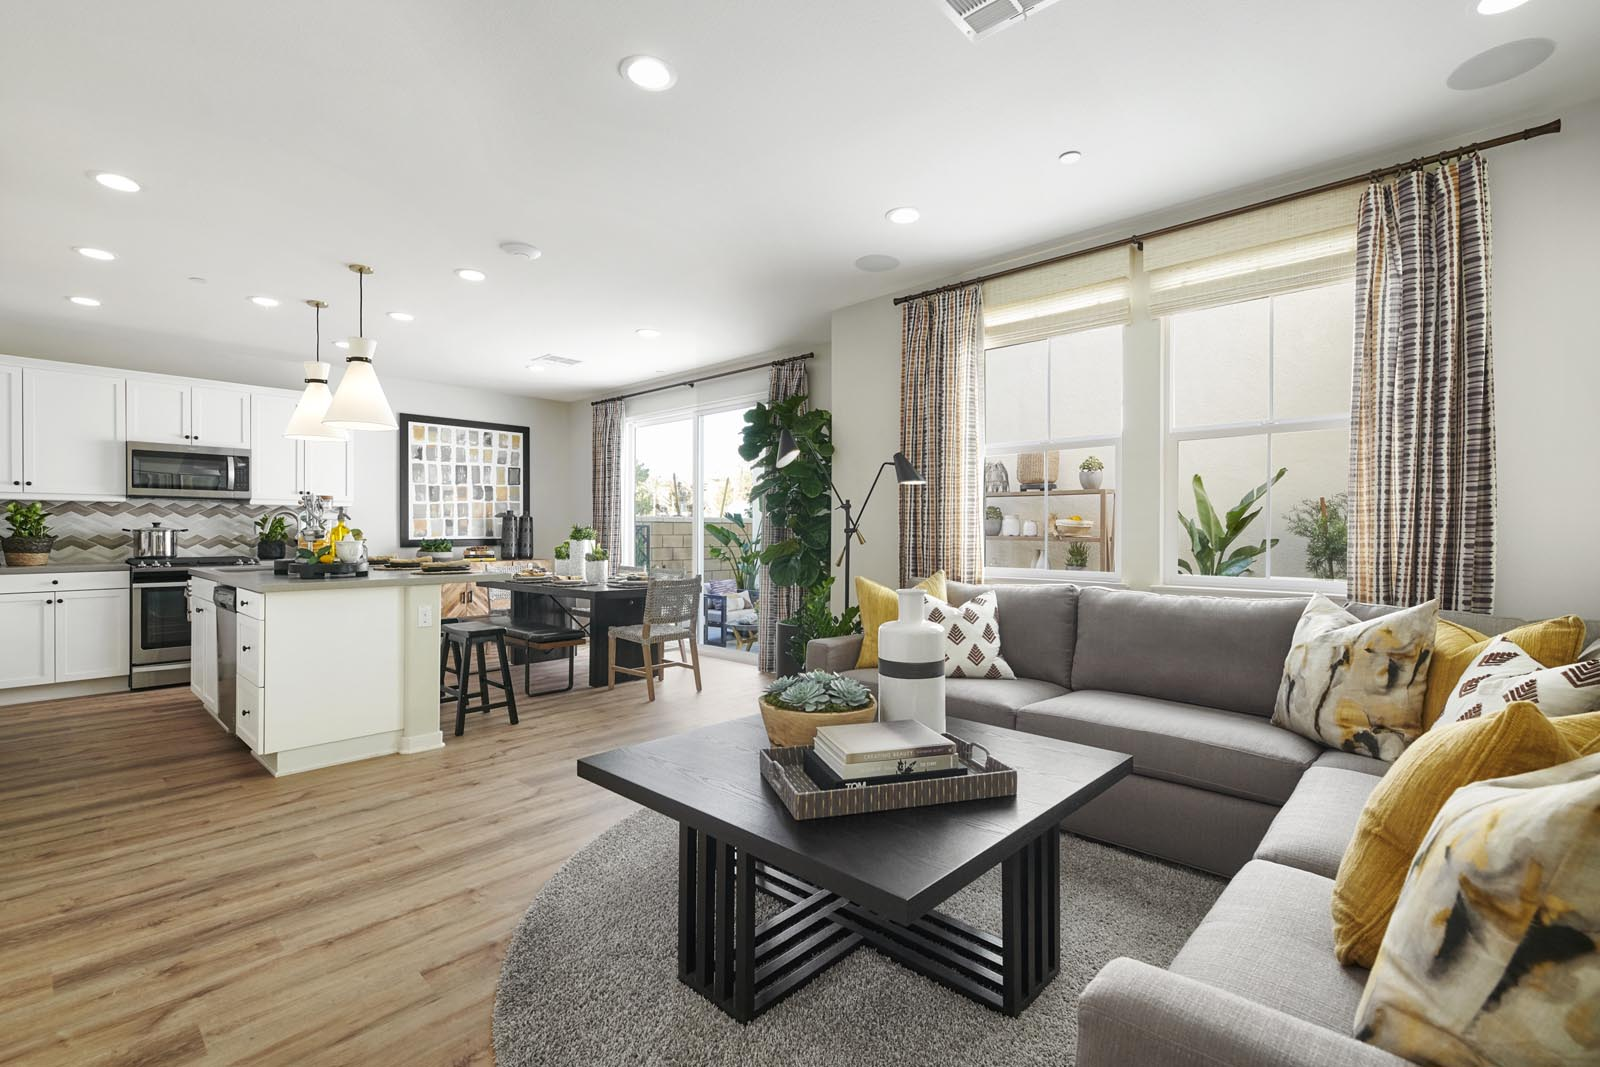 Great Room to Kitchen   Residence 2   Lumin   New Homes in Rancho Cucamonga, CA   Van Daele Homes